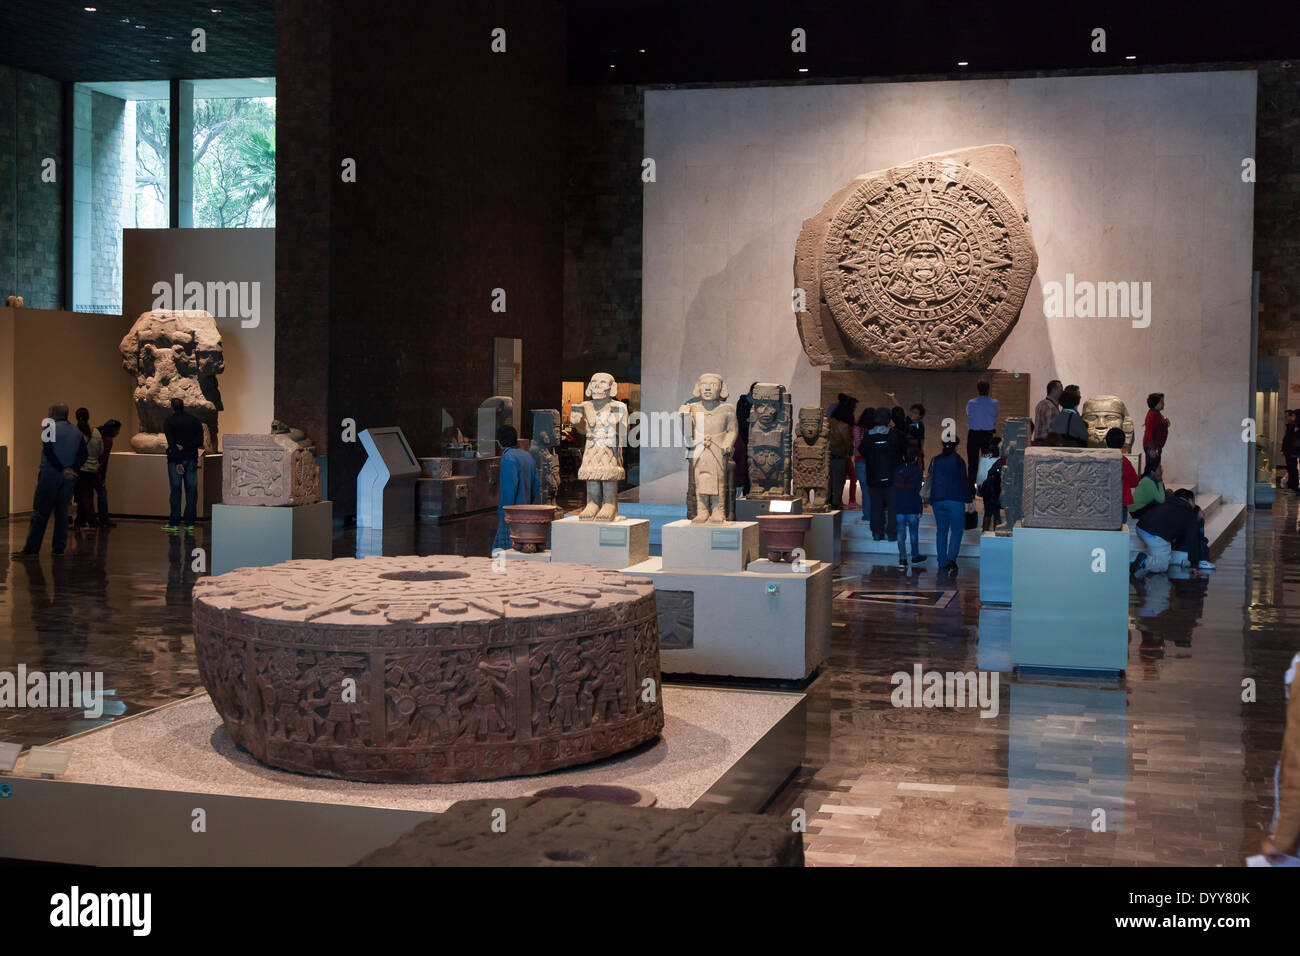 Sala Mexica at the National Museum of Anthropology - Miguel Hidalgo, Mexico City, Federal District, Mexico - Stock Image